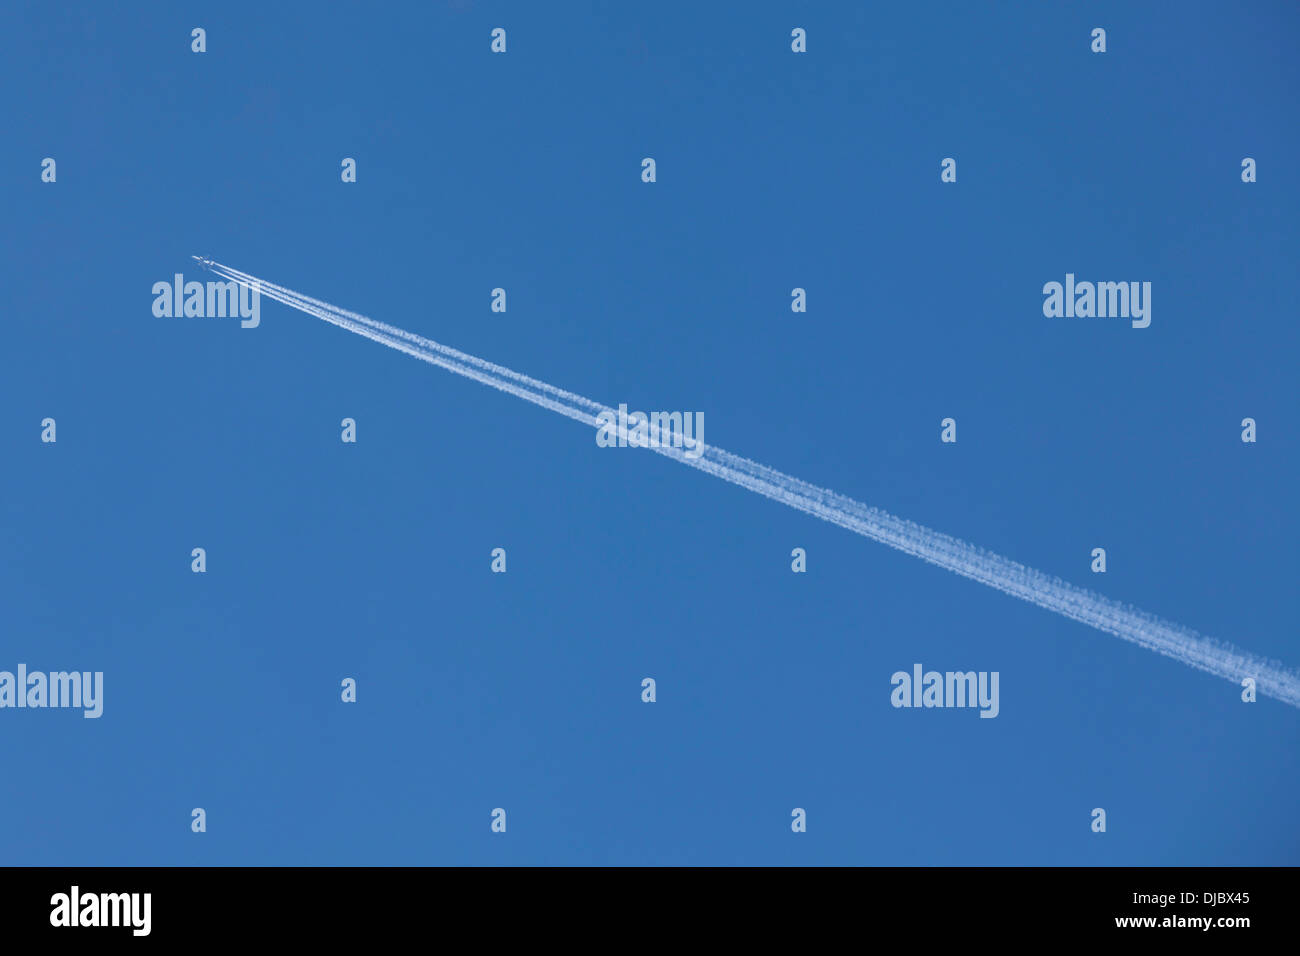 Flying airoplane on the blue sky leaving white lines behind - Stock Image